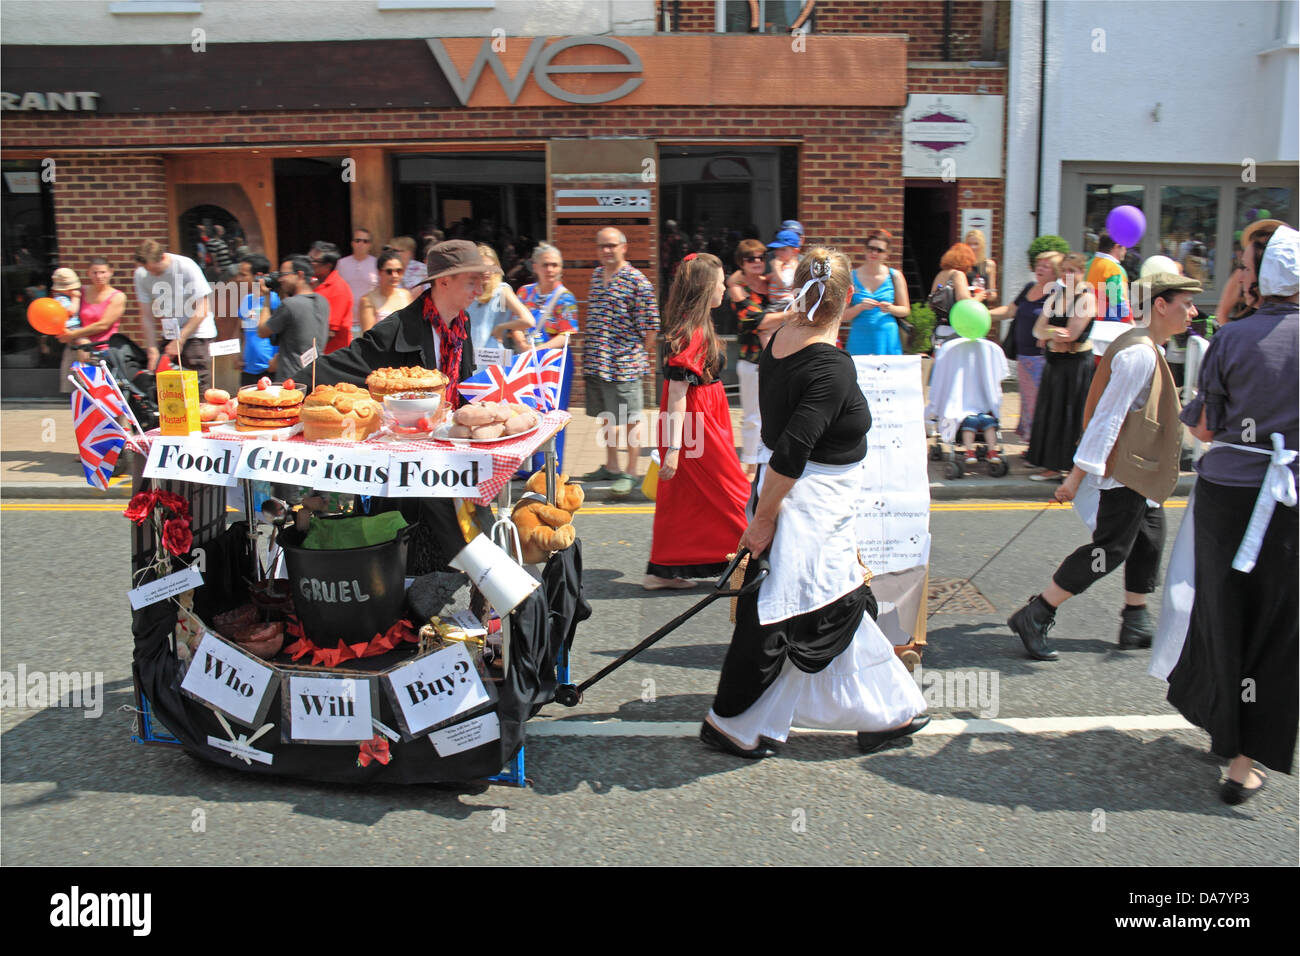 Oliver, 'Musicals' themed Grand Procession, Fleet & District Carnival, 6th June 2013. Fleet, Hampshire, - Stock Image